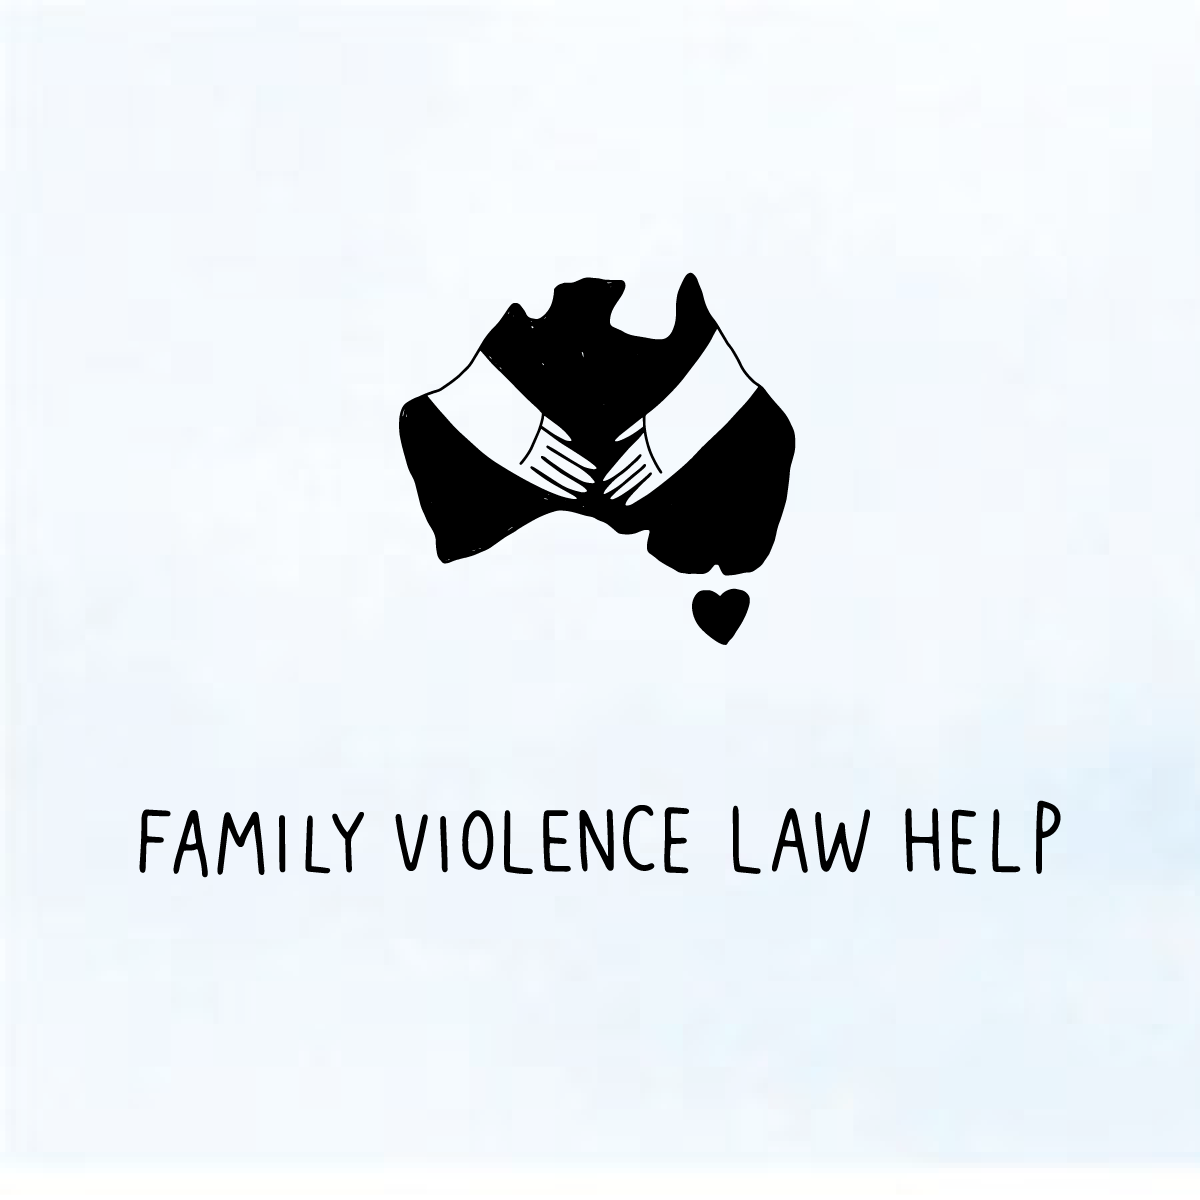 national-legal-aid-family-violence-law-help